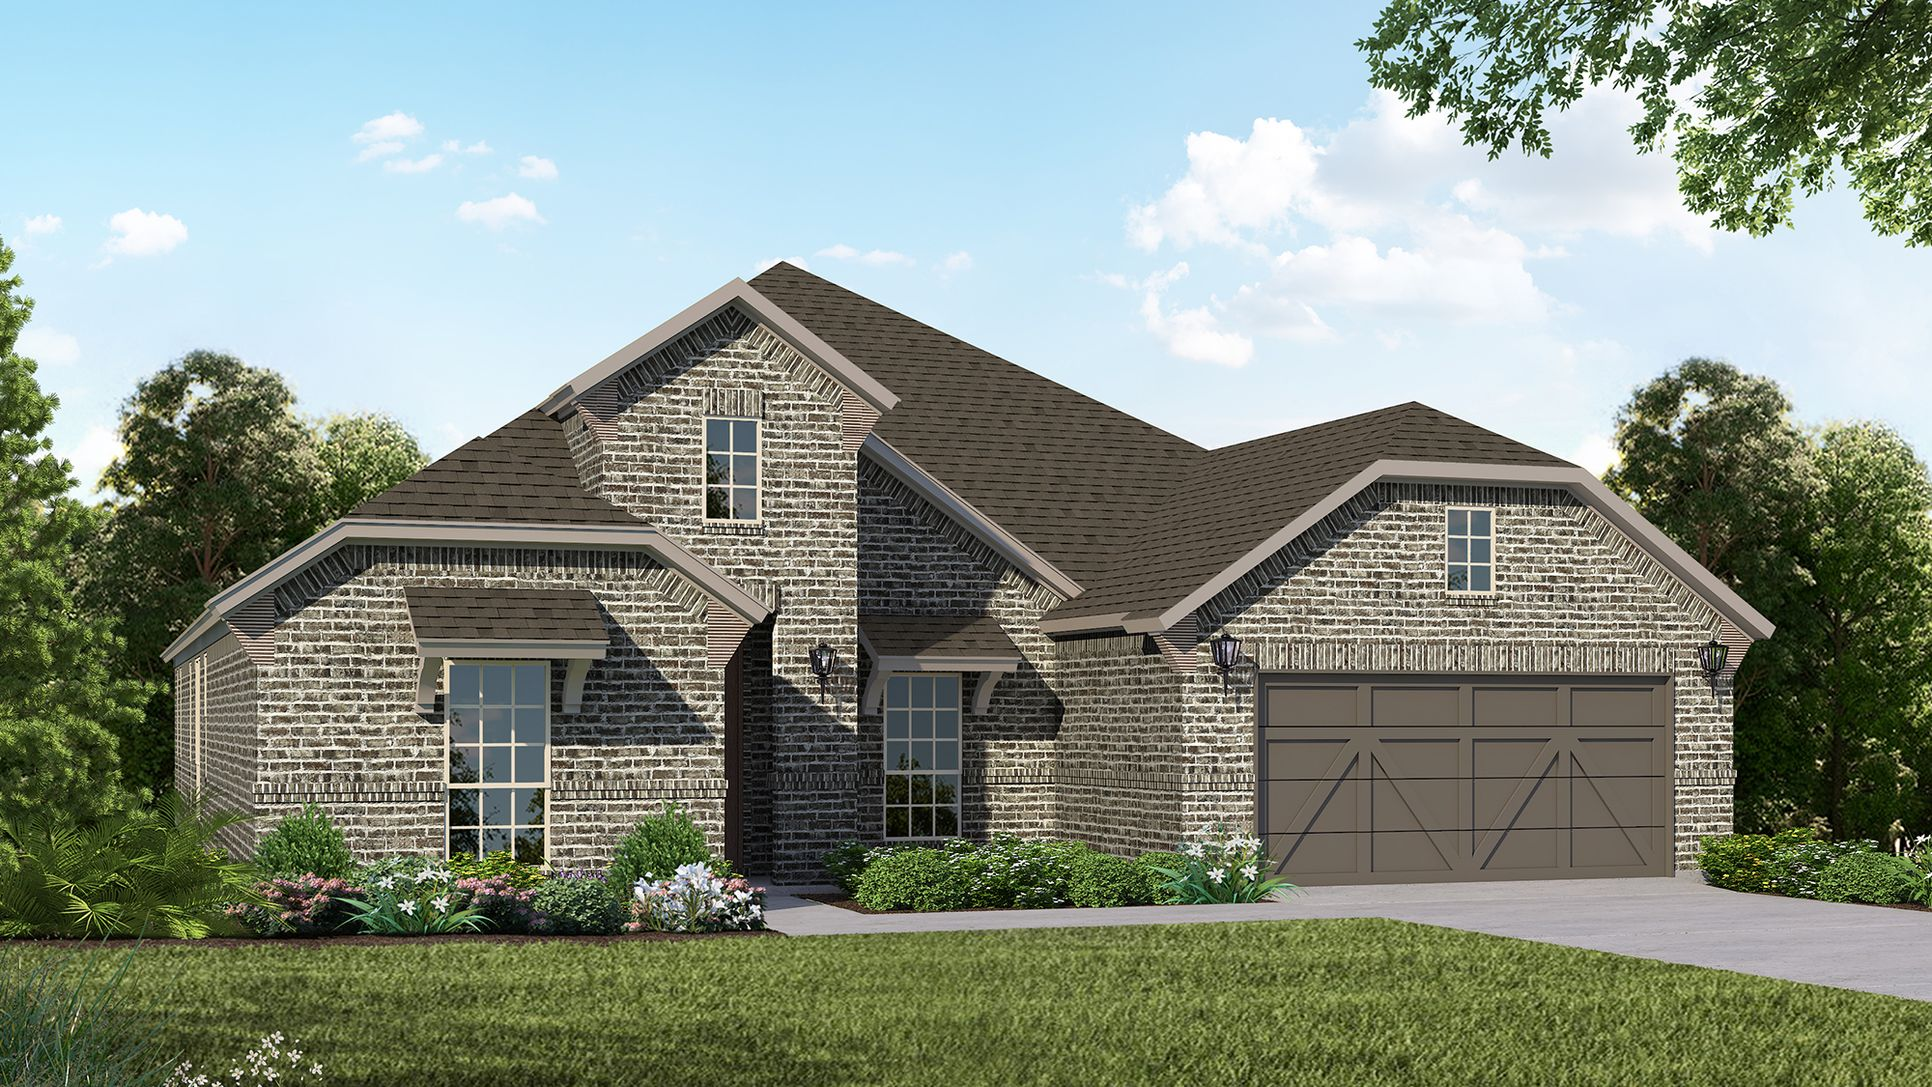 Exterior:Plan 1688 Elevation B by American Legend Homes